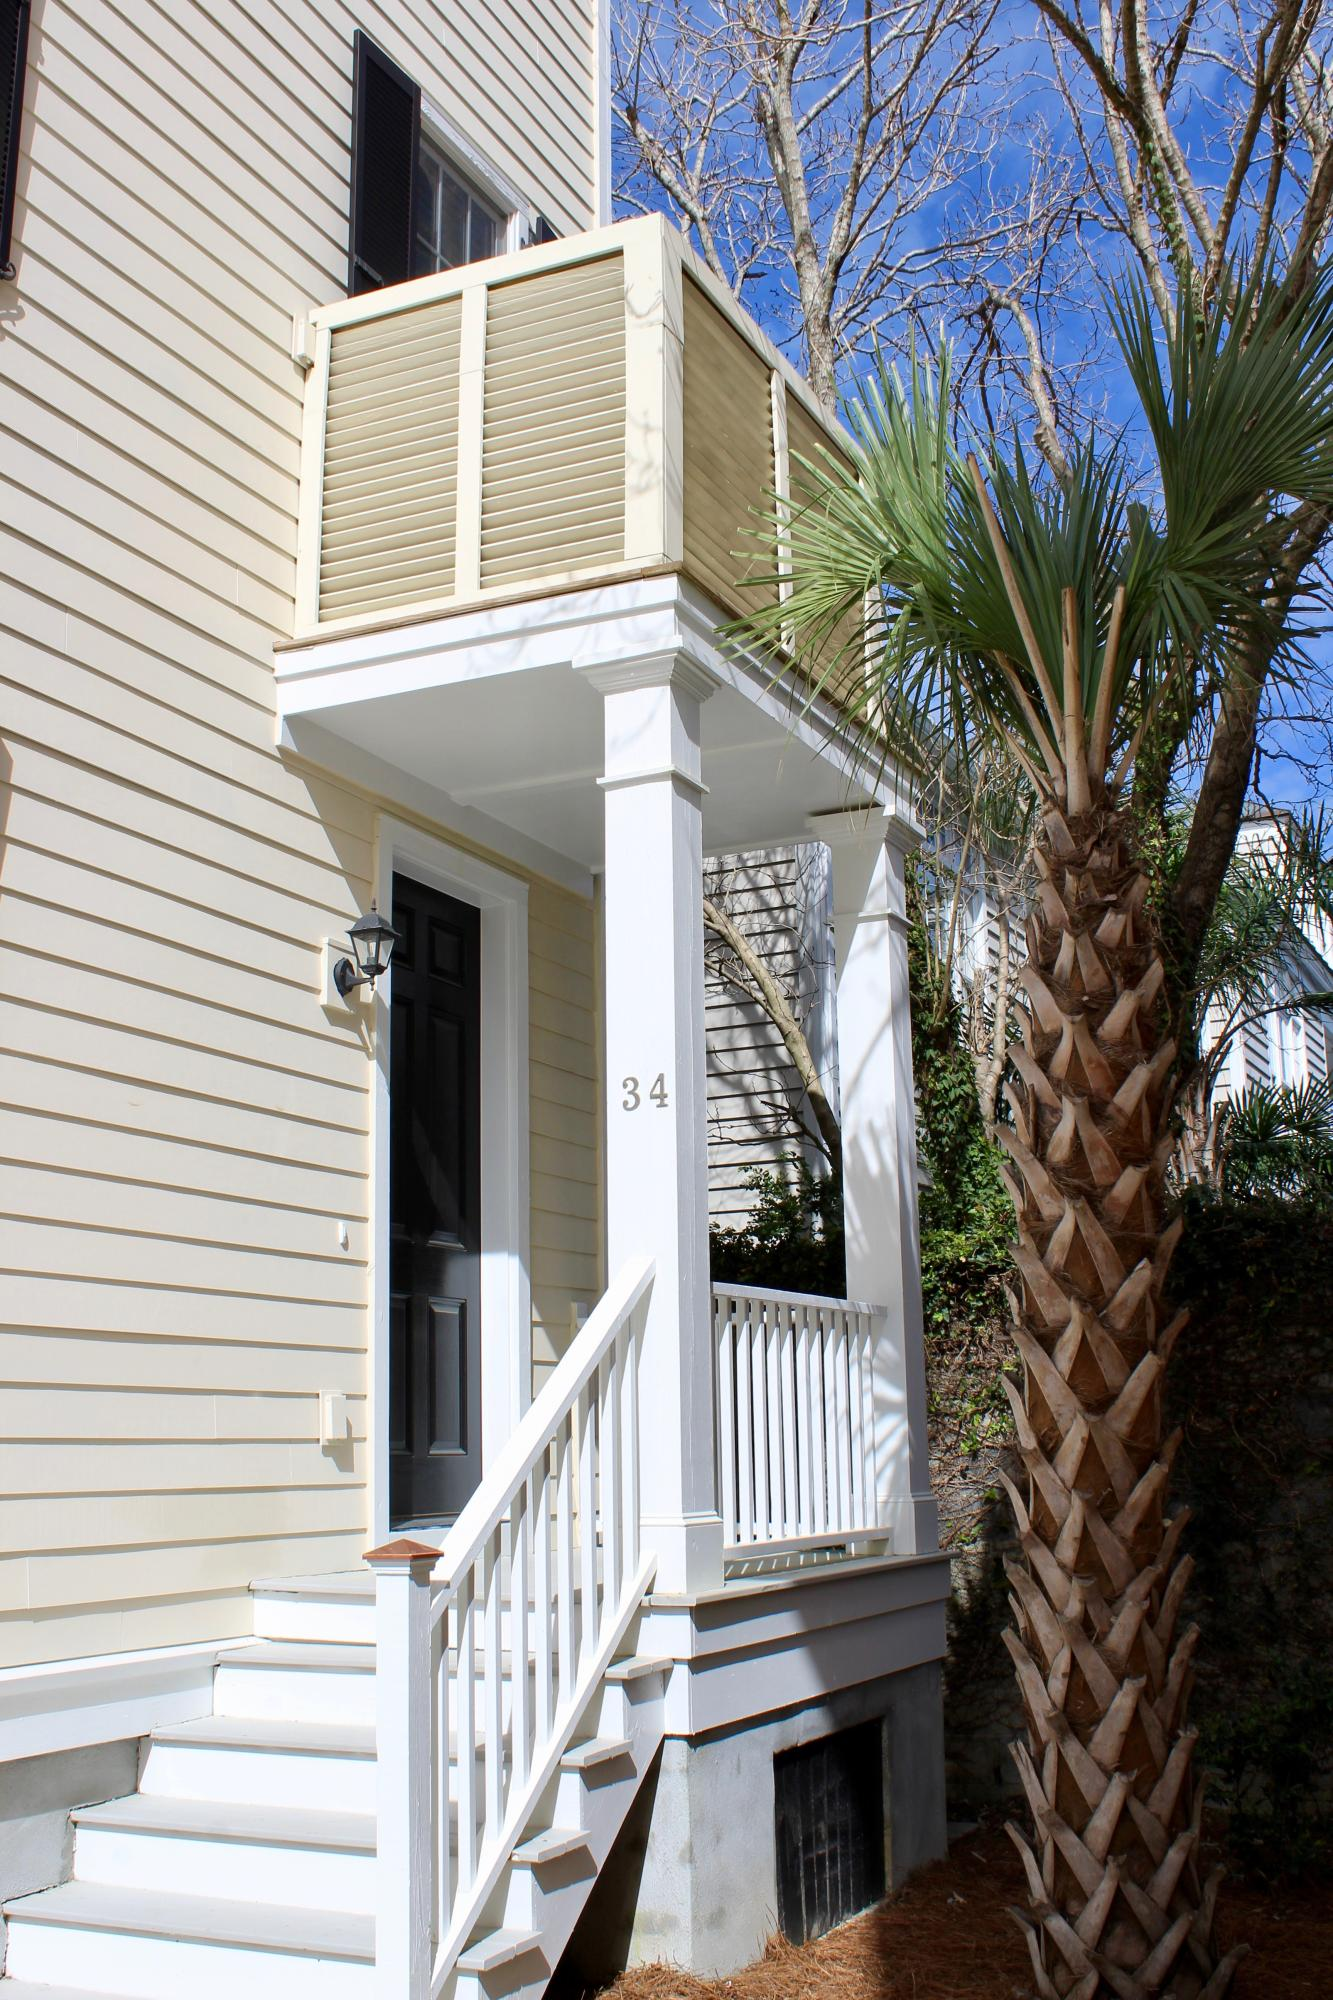 Morris Square Homes For Sale - 34 Dereef, Charleston, SC - 28